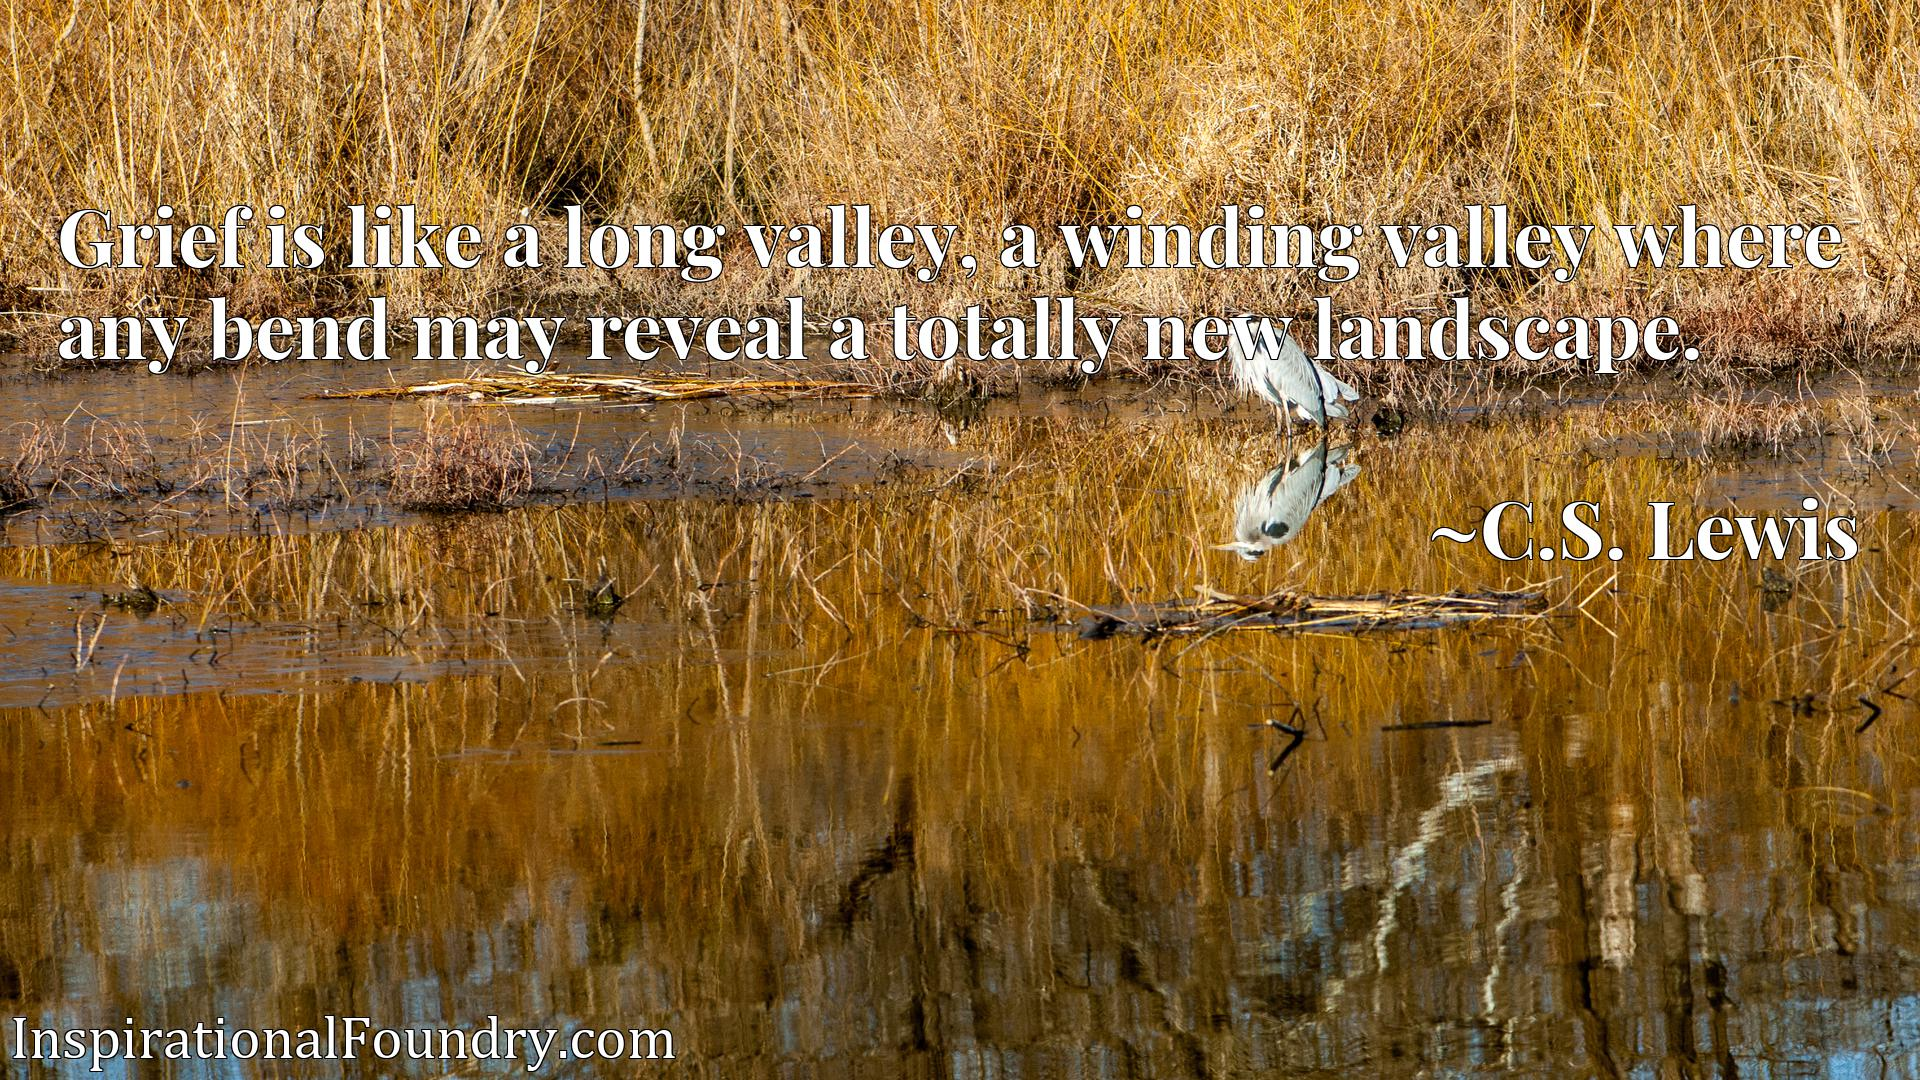 Grief is like a long valley, a winding valley where any bend may reveal a totally new landscape.